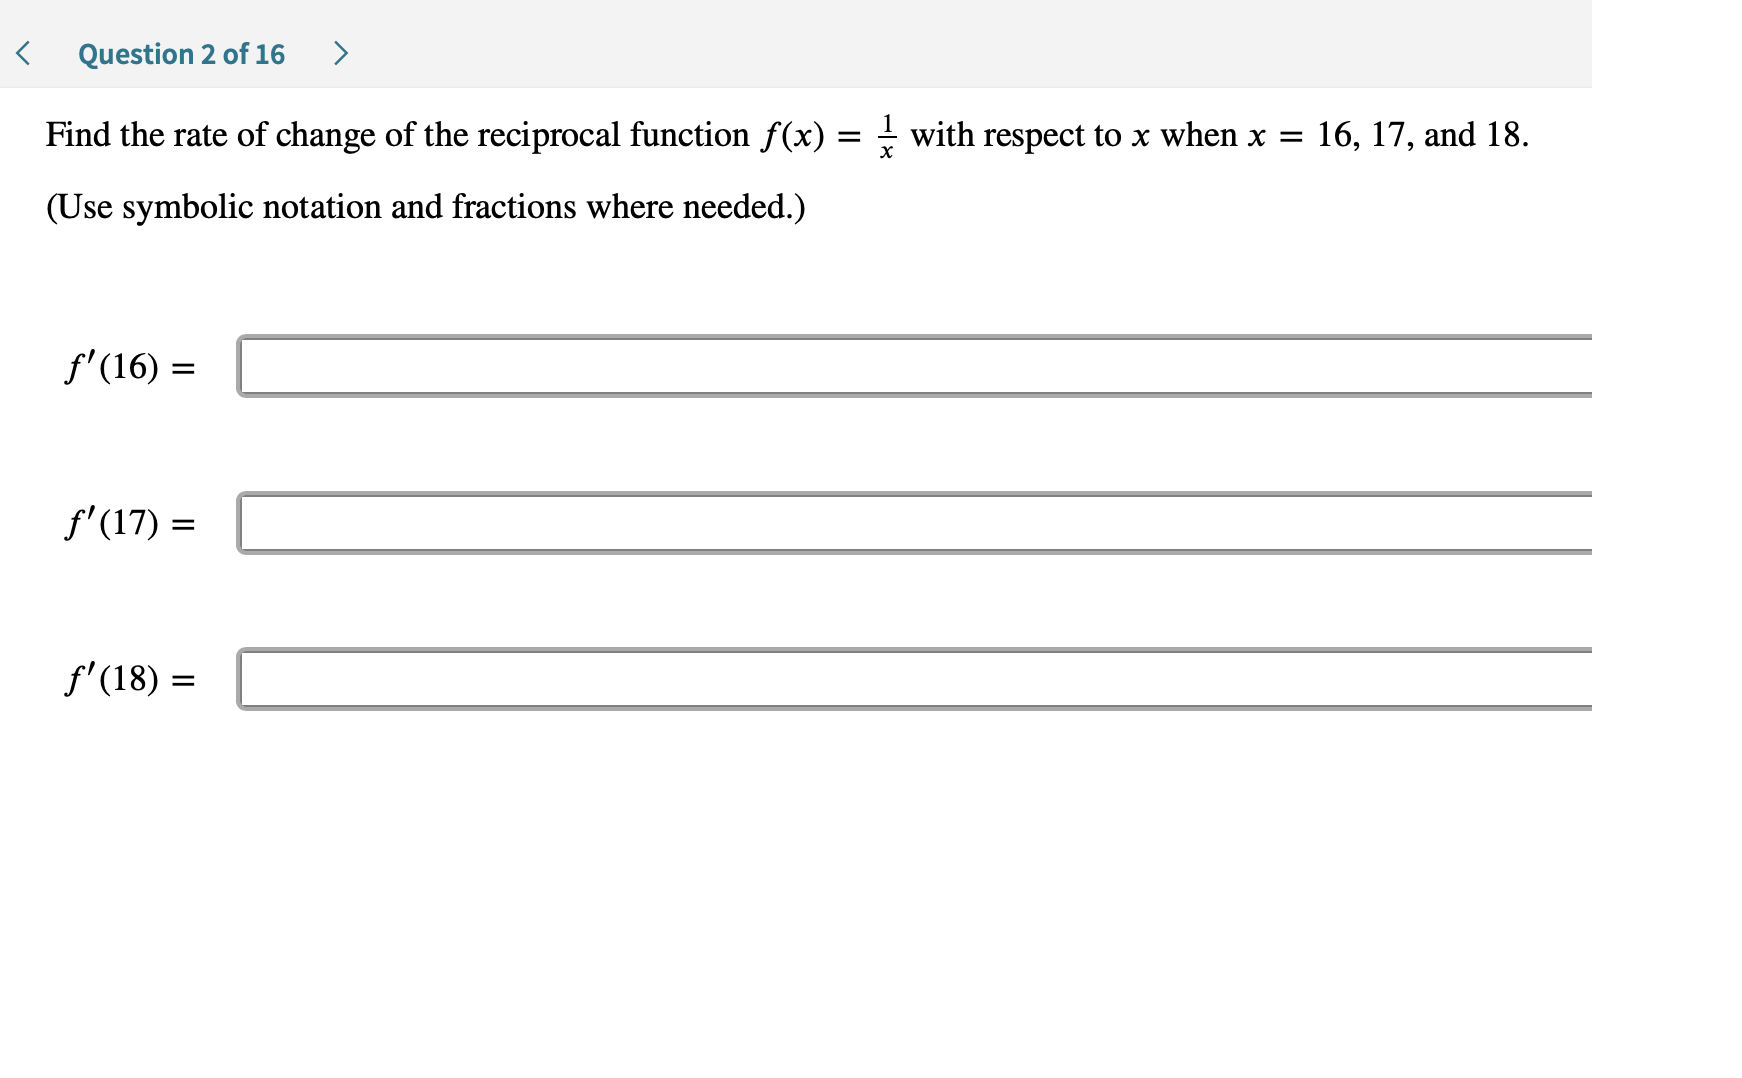 > Question 2 of 16 Find the rate of change of the reciprocal function f(x) = - with respect to x when x = 16, 17, and 18. (Use symbolic notation and fractions where needed.) f'(16) f'(17) f'(18)